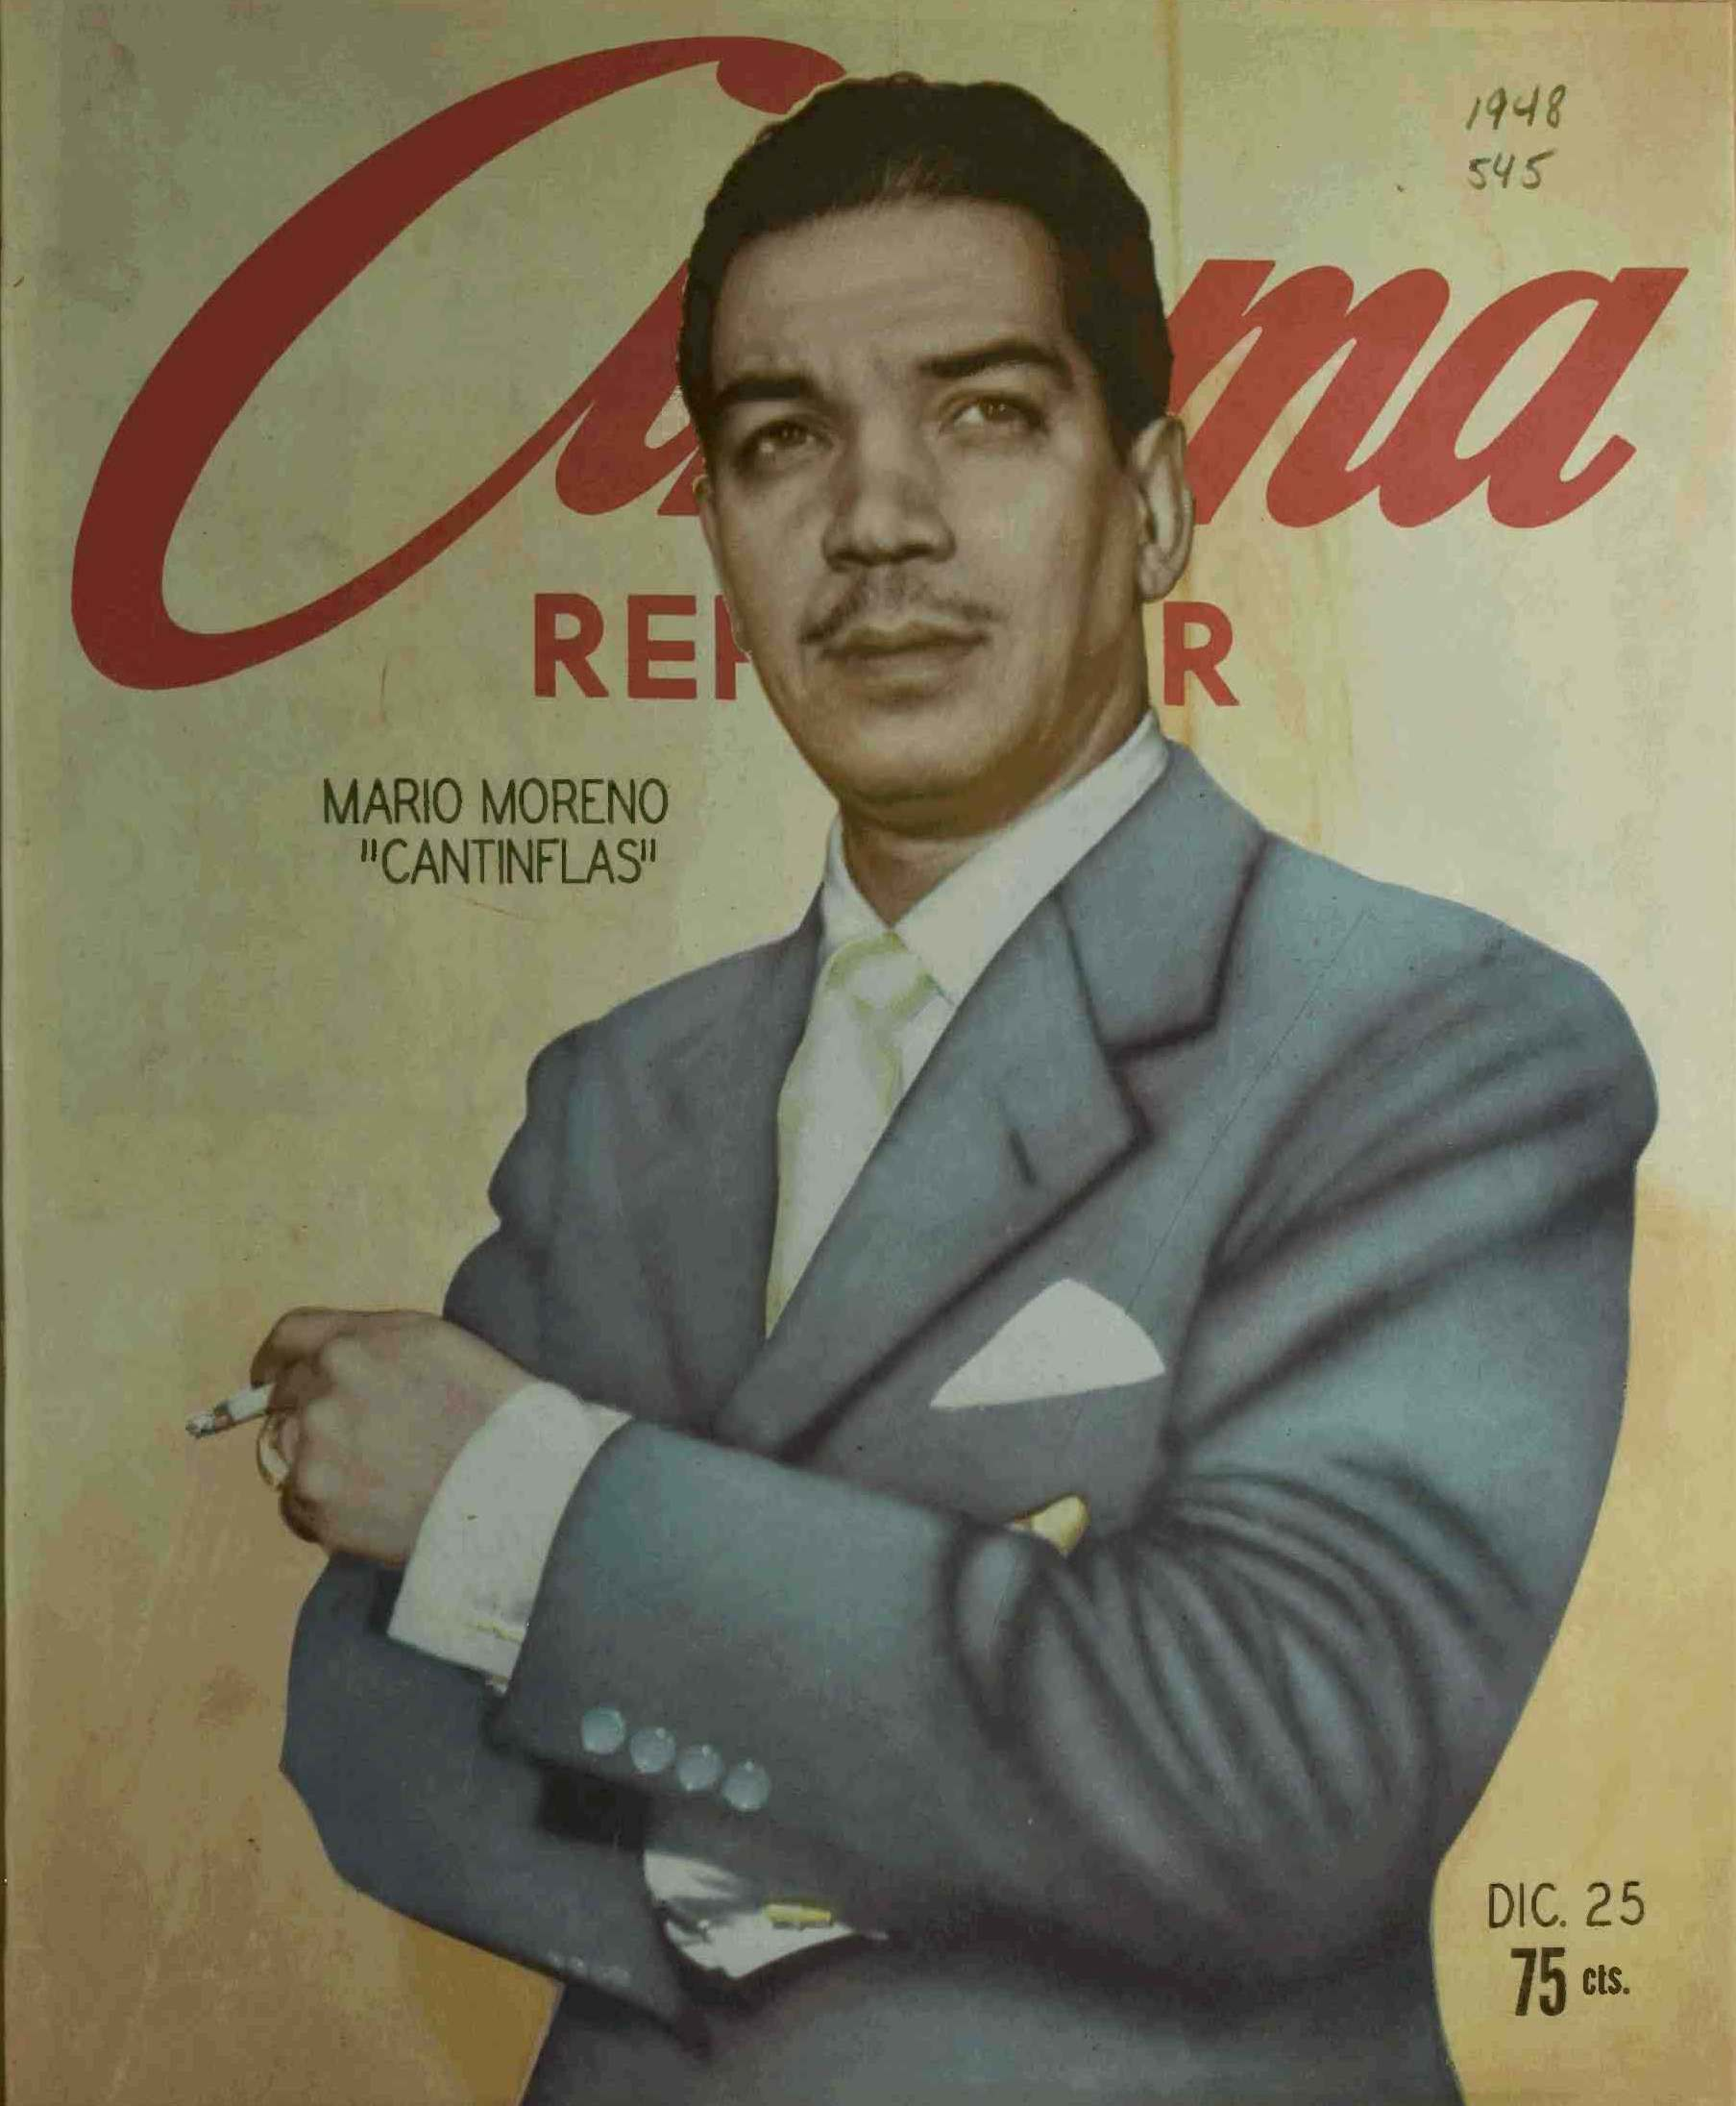 Cinema Reporter, 25 December 1948 (Brill Classic Mexican Cinema)